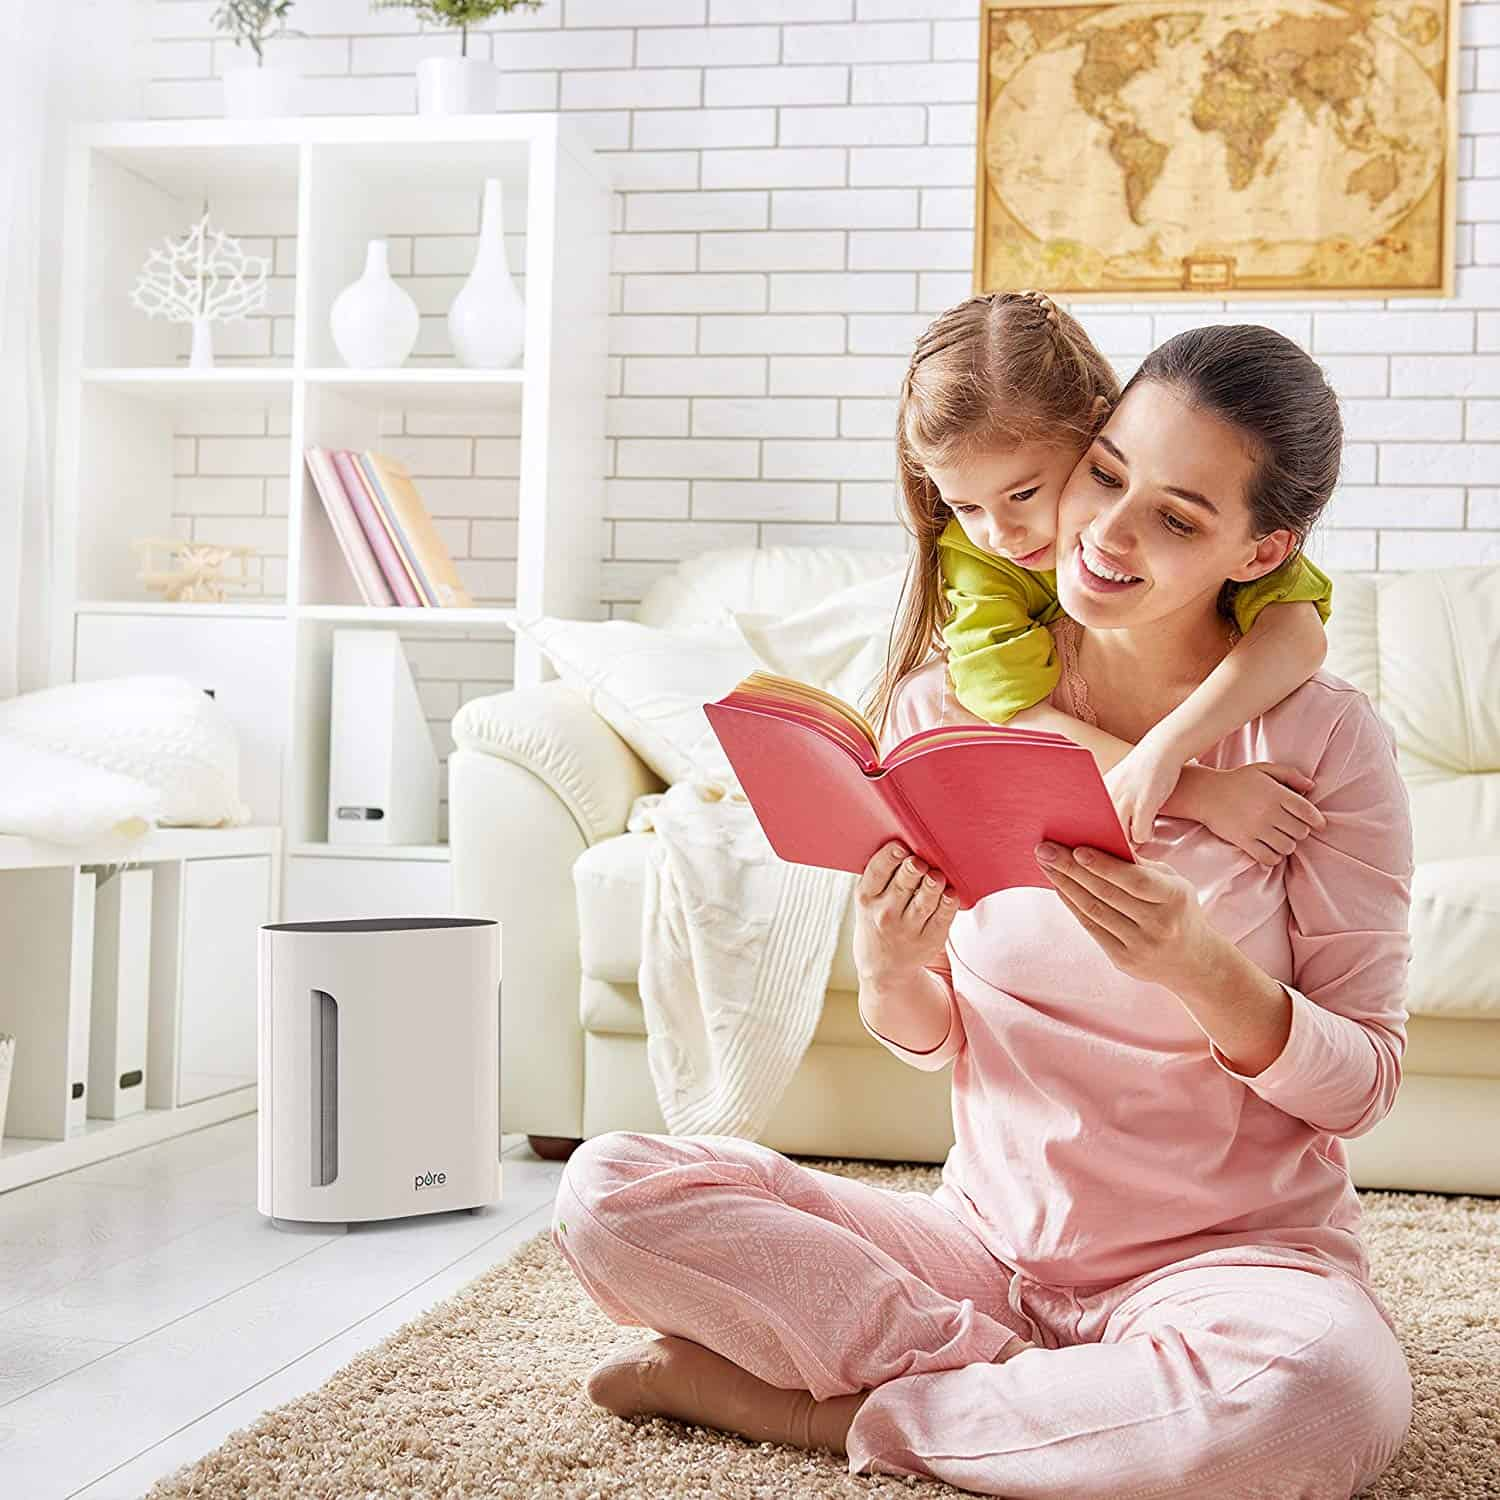 Pure Zone Enrichment 3-in-1 Air Purifier Review